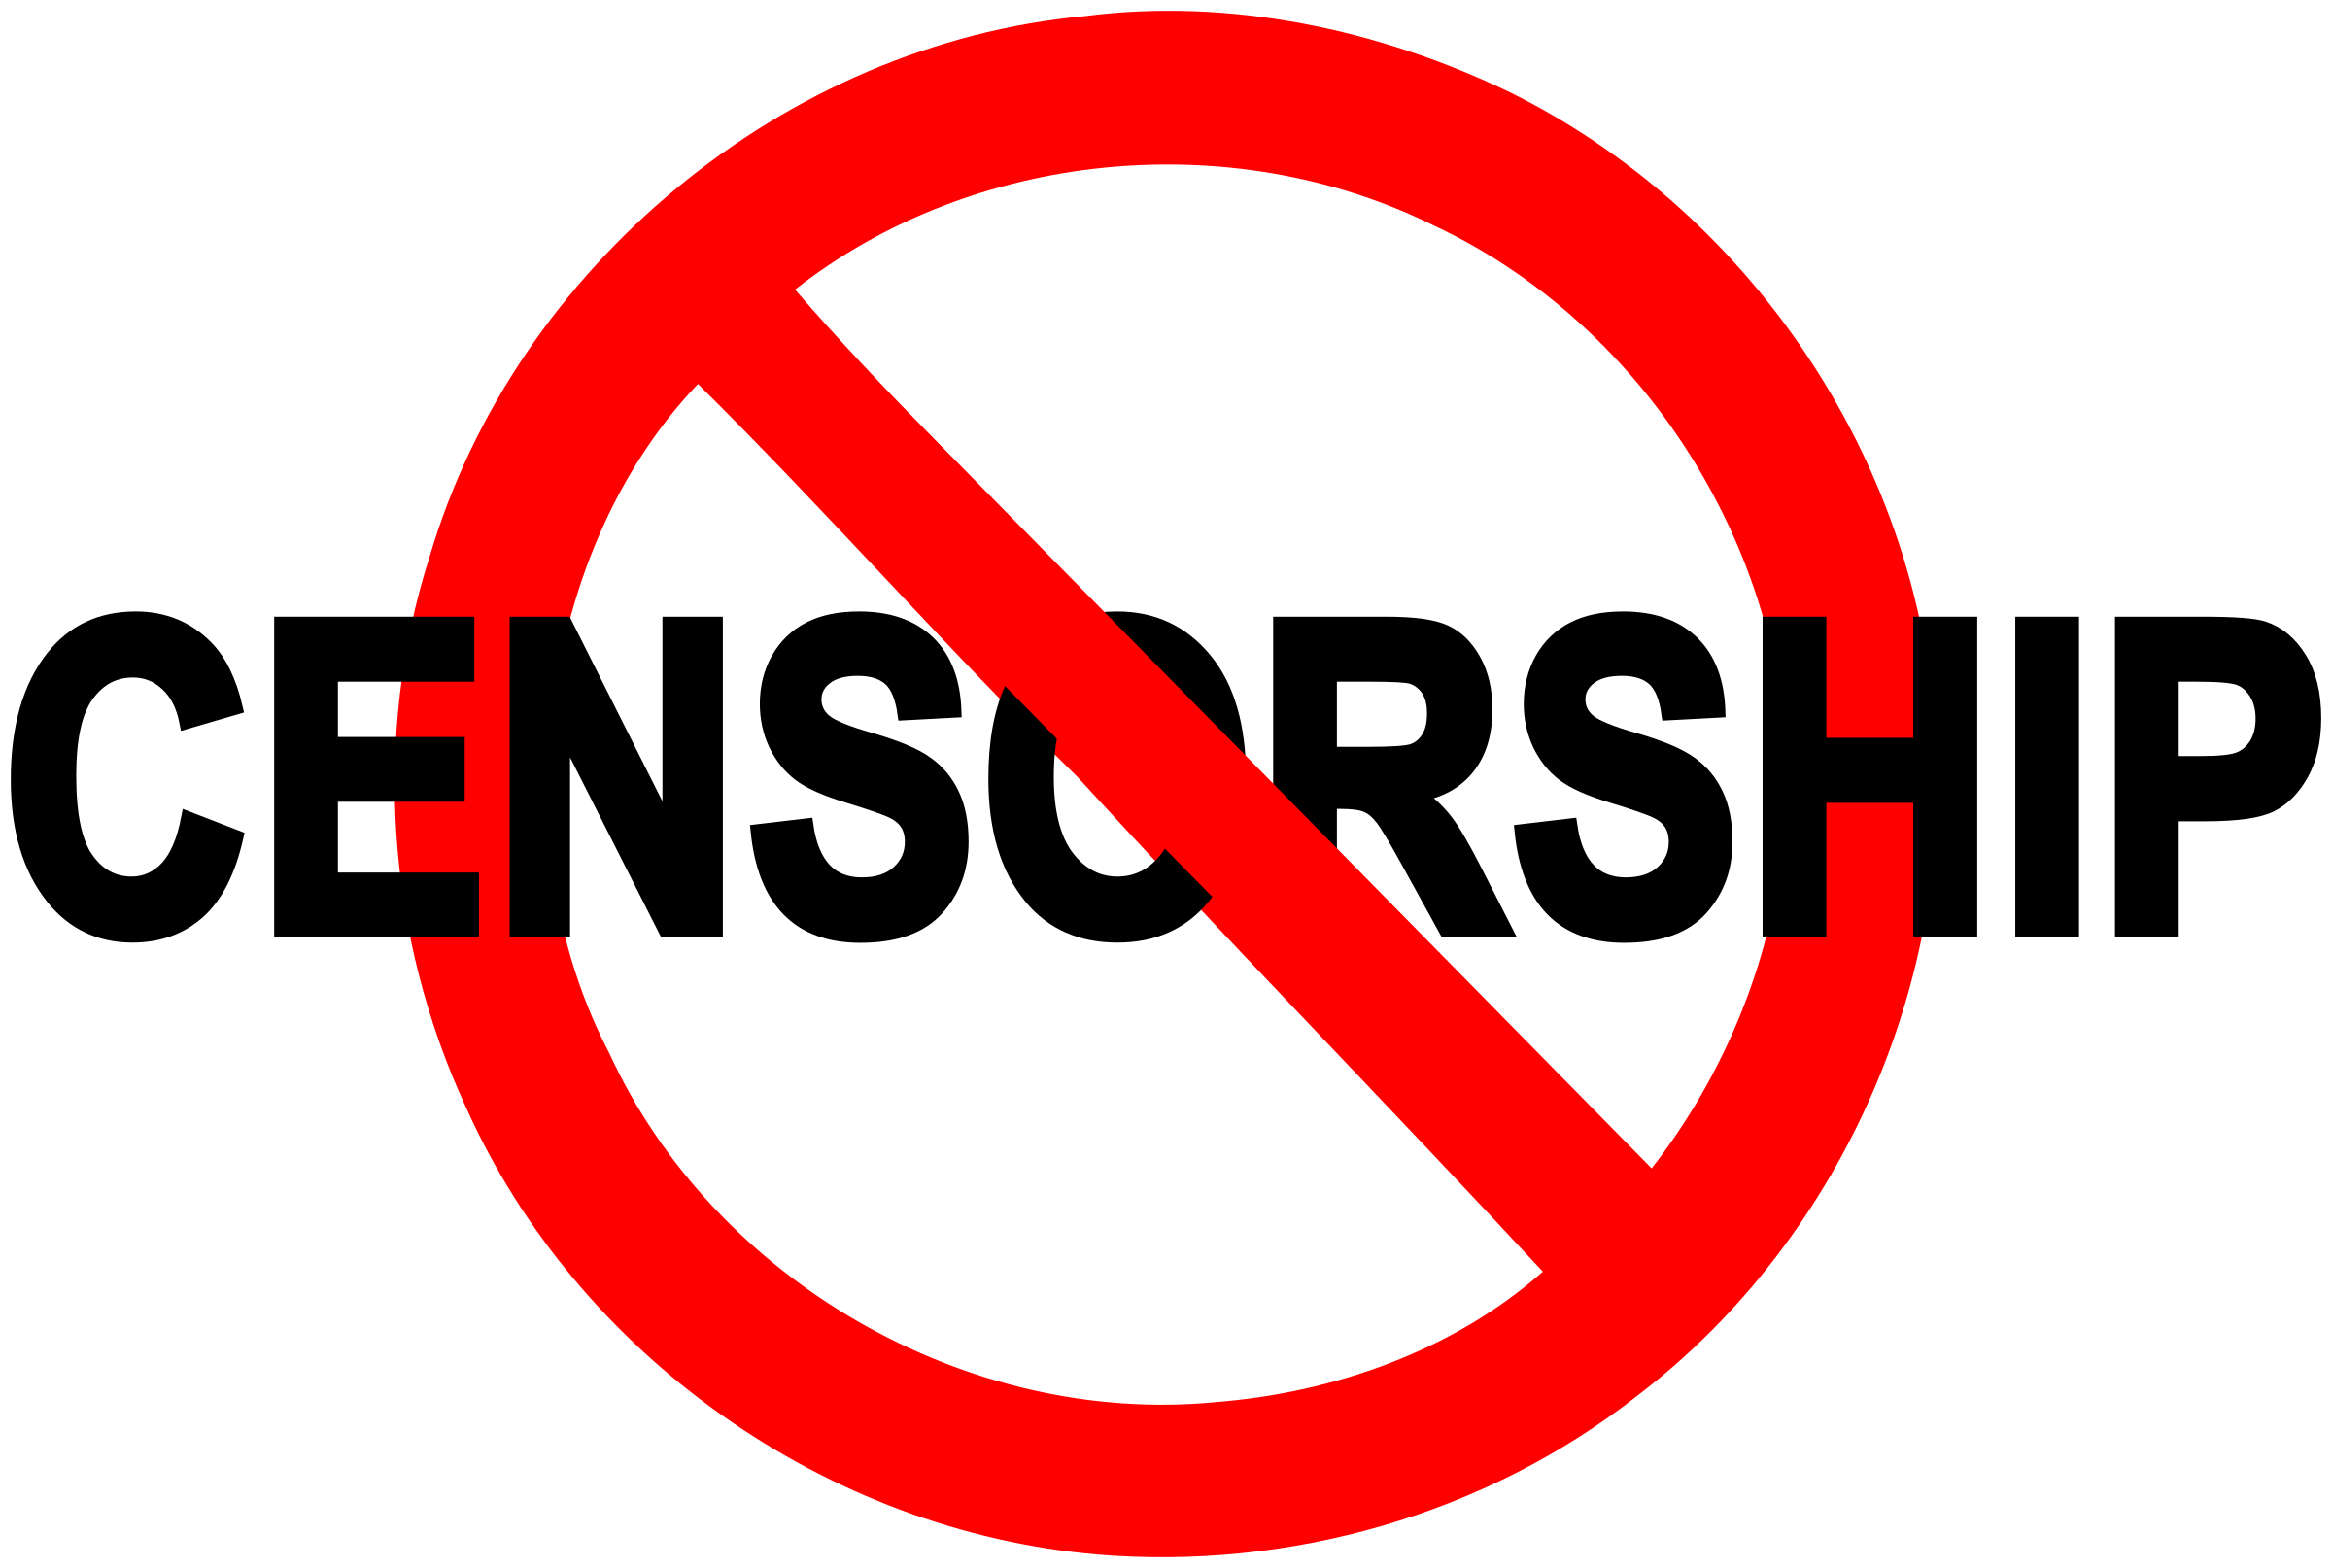 No censorship sign by Juhele